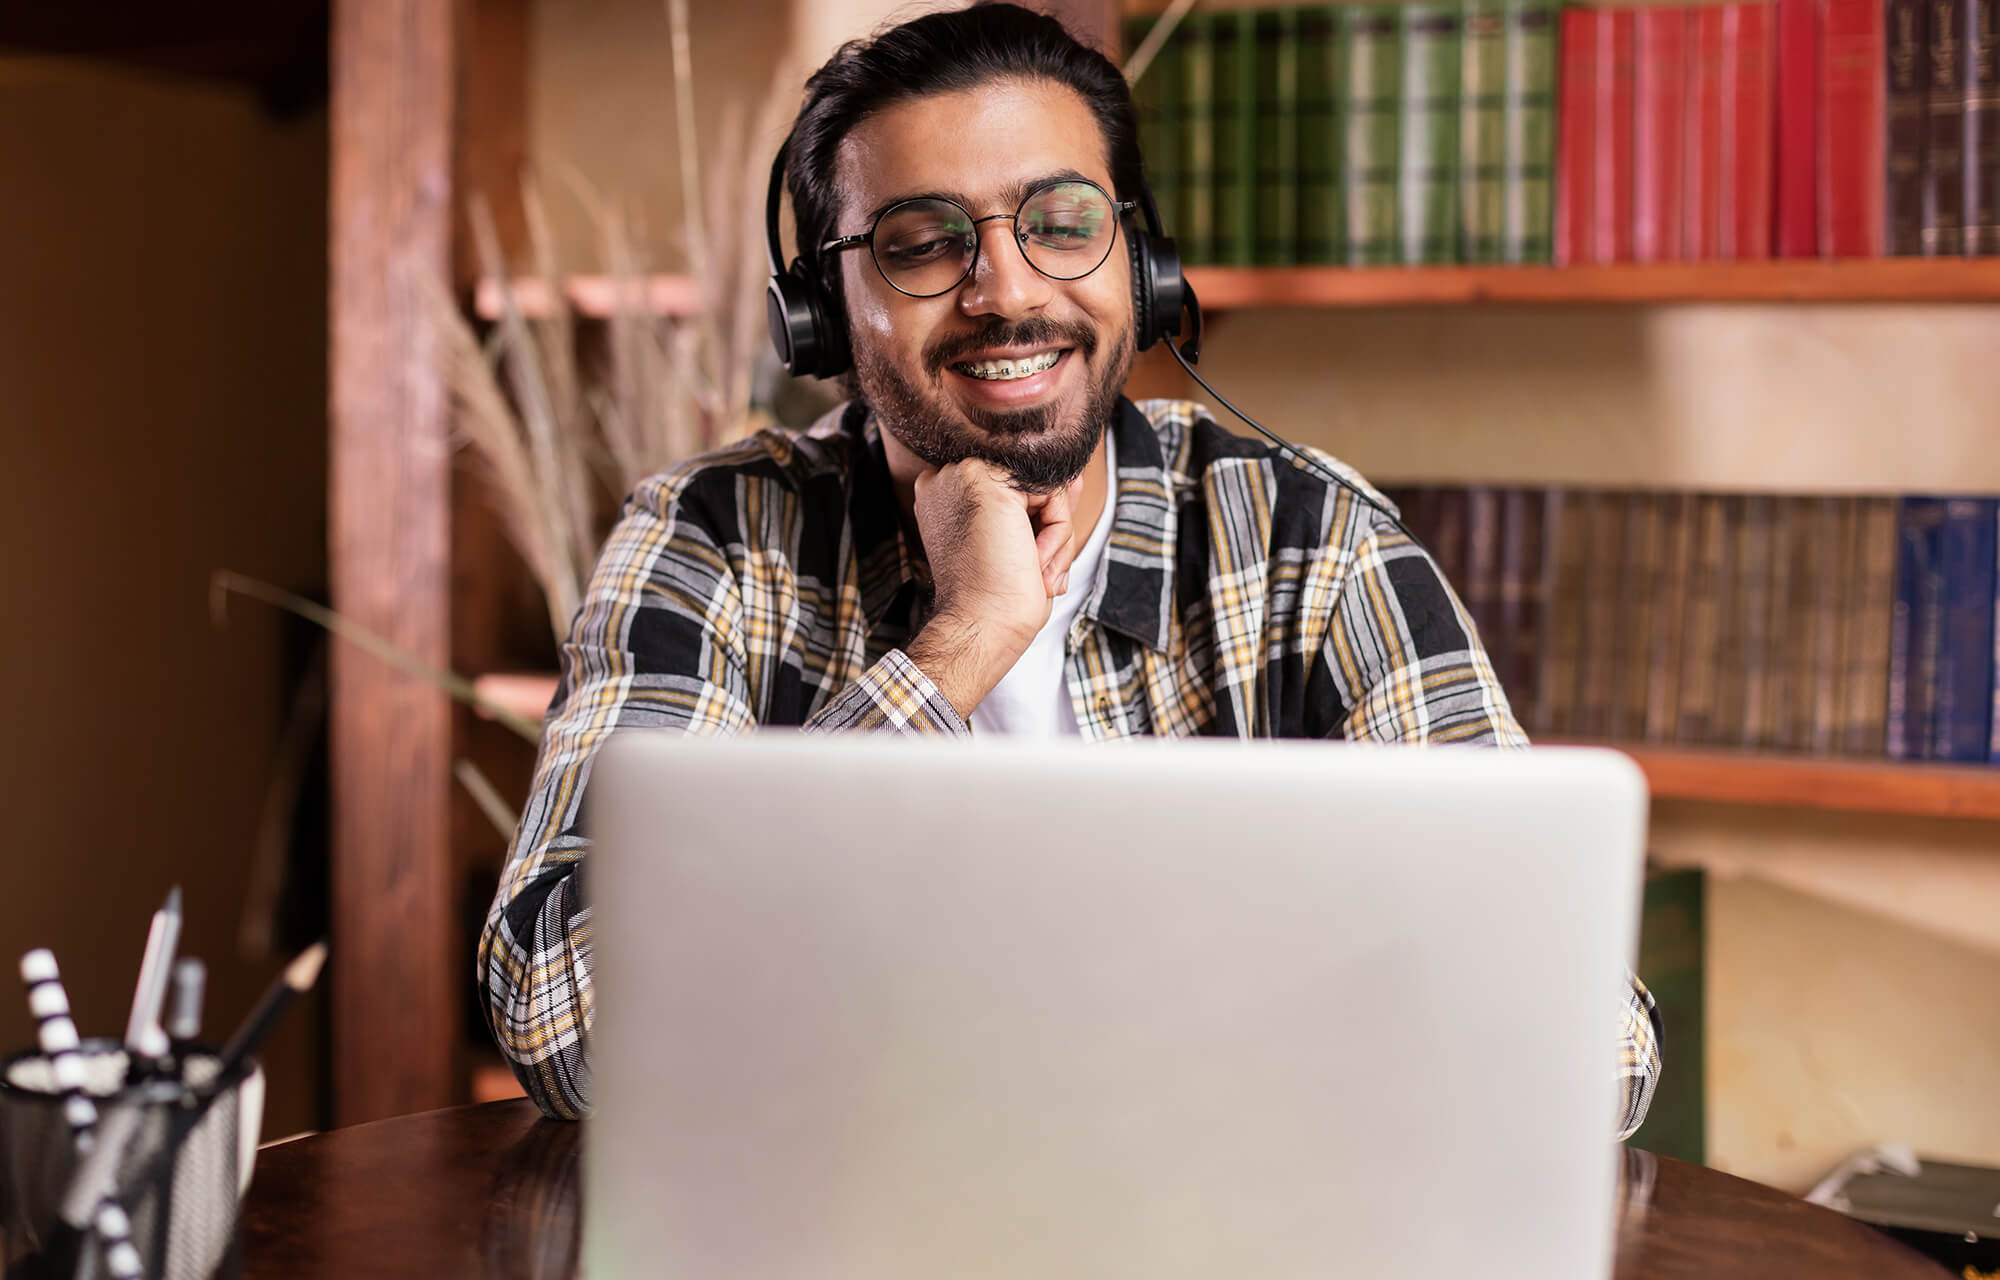 student guy watching video lecture online on laptop